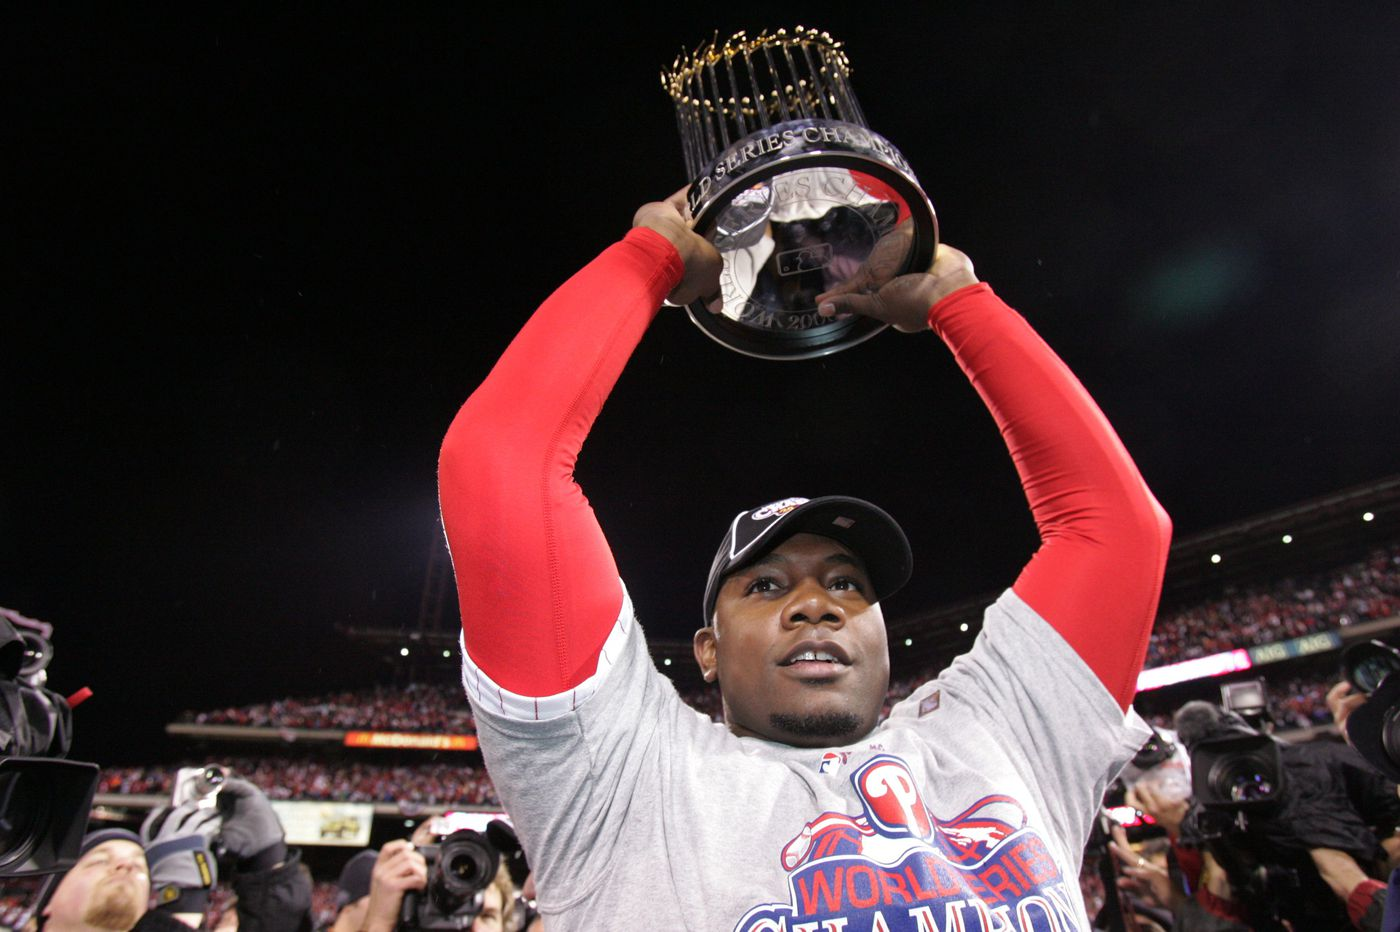 Ryan Howard, Jimmy Rollins among former Phillies set to attend 2008 World Series celebration this weekend